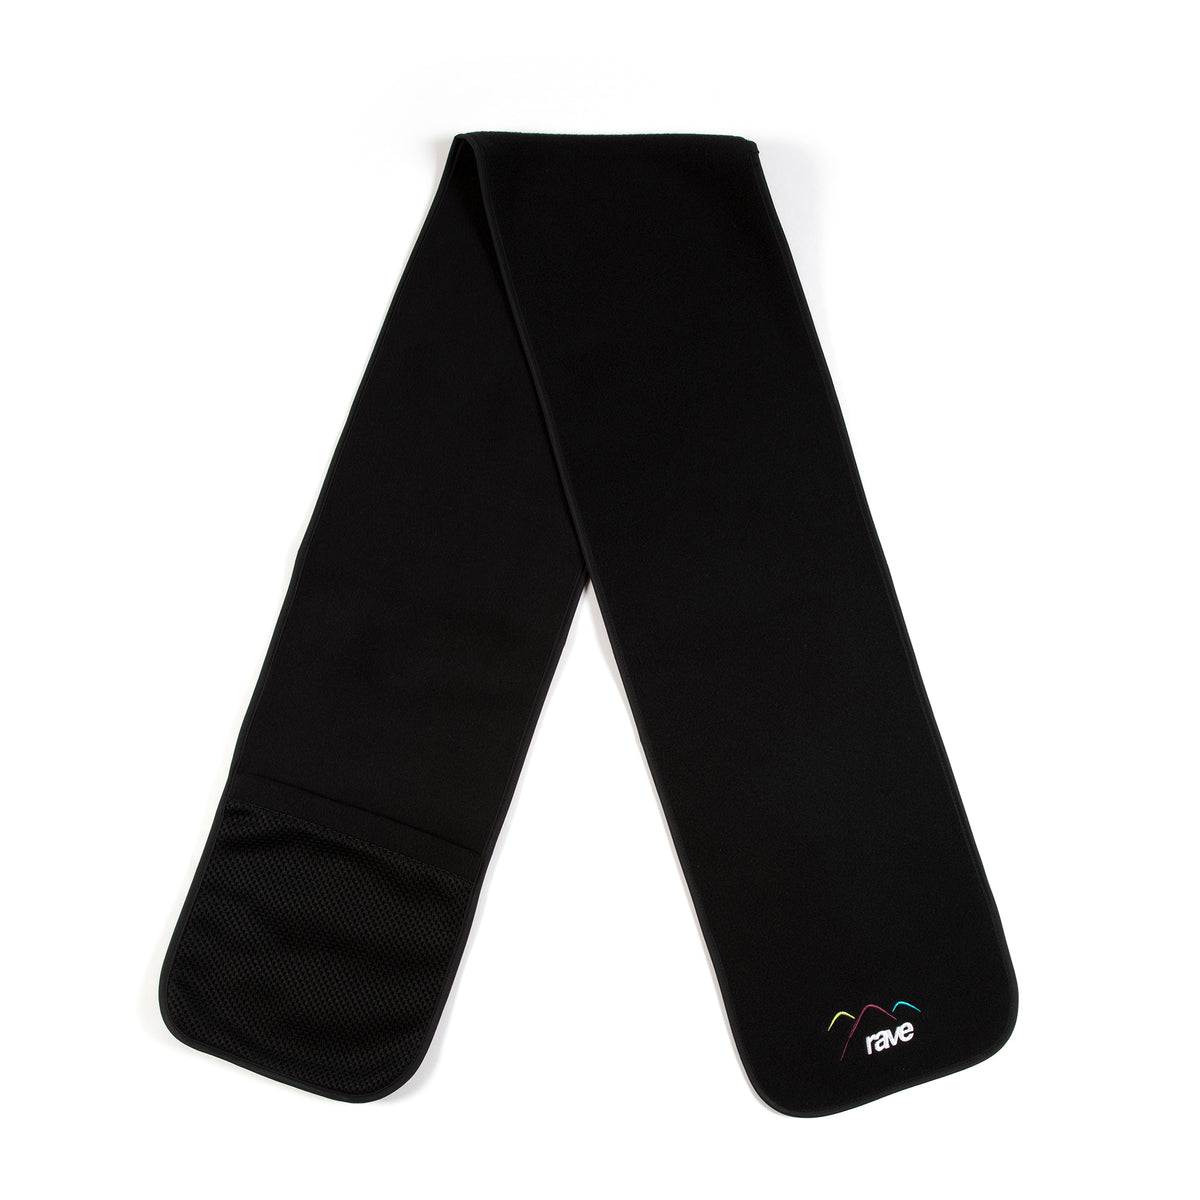 SUMMIT black fleece scarf - RAVE skateboards